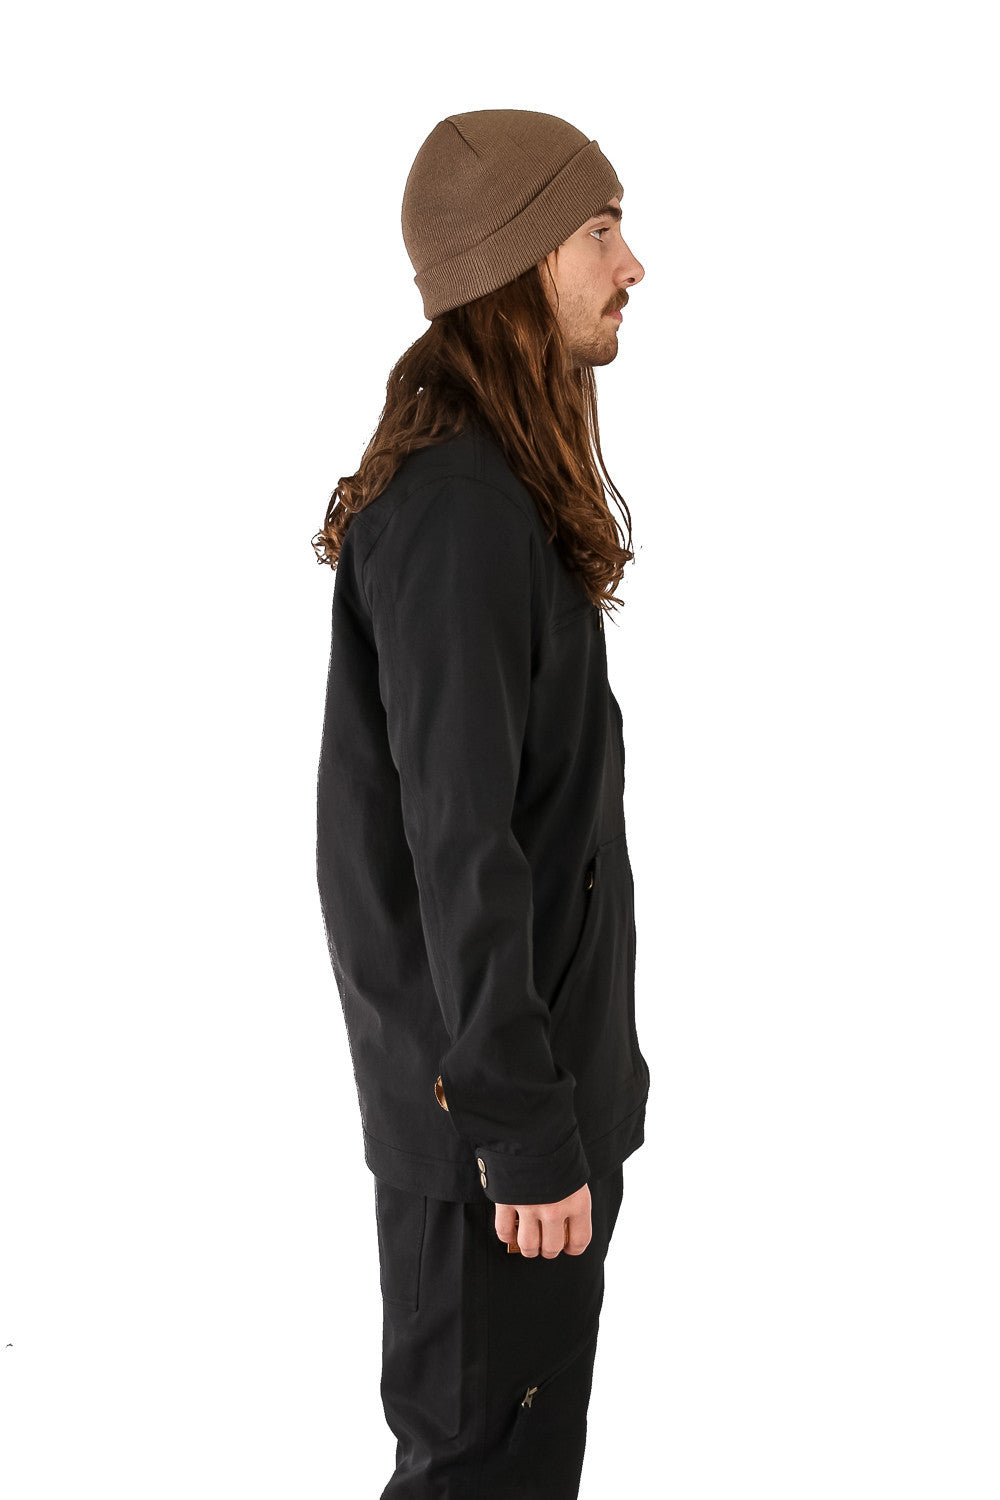 Shred Shacket Black